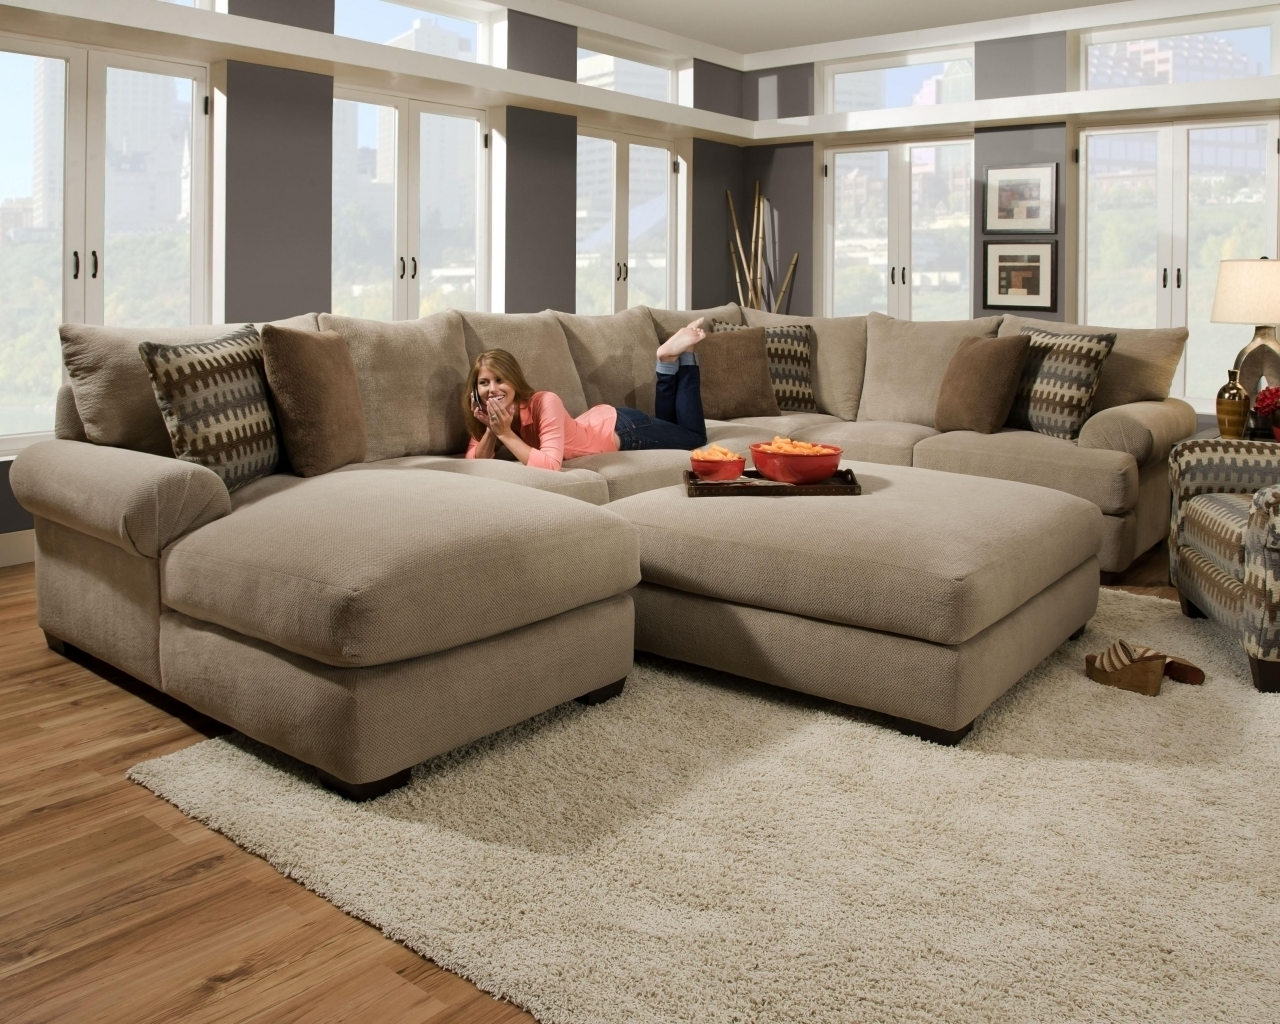 Amazing Sectional Sofa With Oversized Ottoman 59 For Your Best Throughout Most Current Sofas With Ottoman (View 1 of 20)